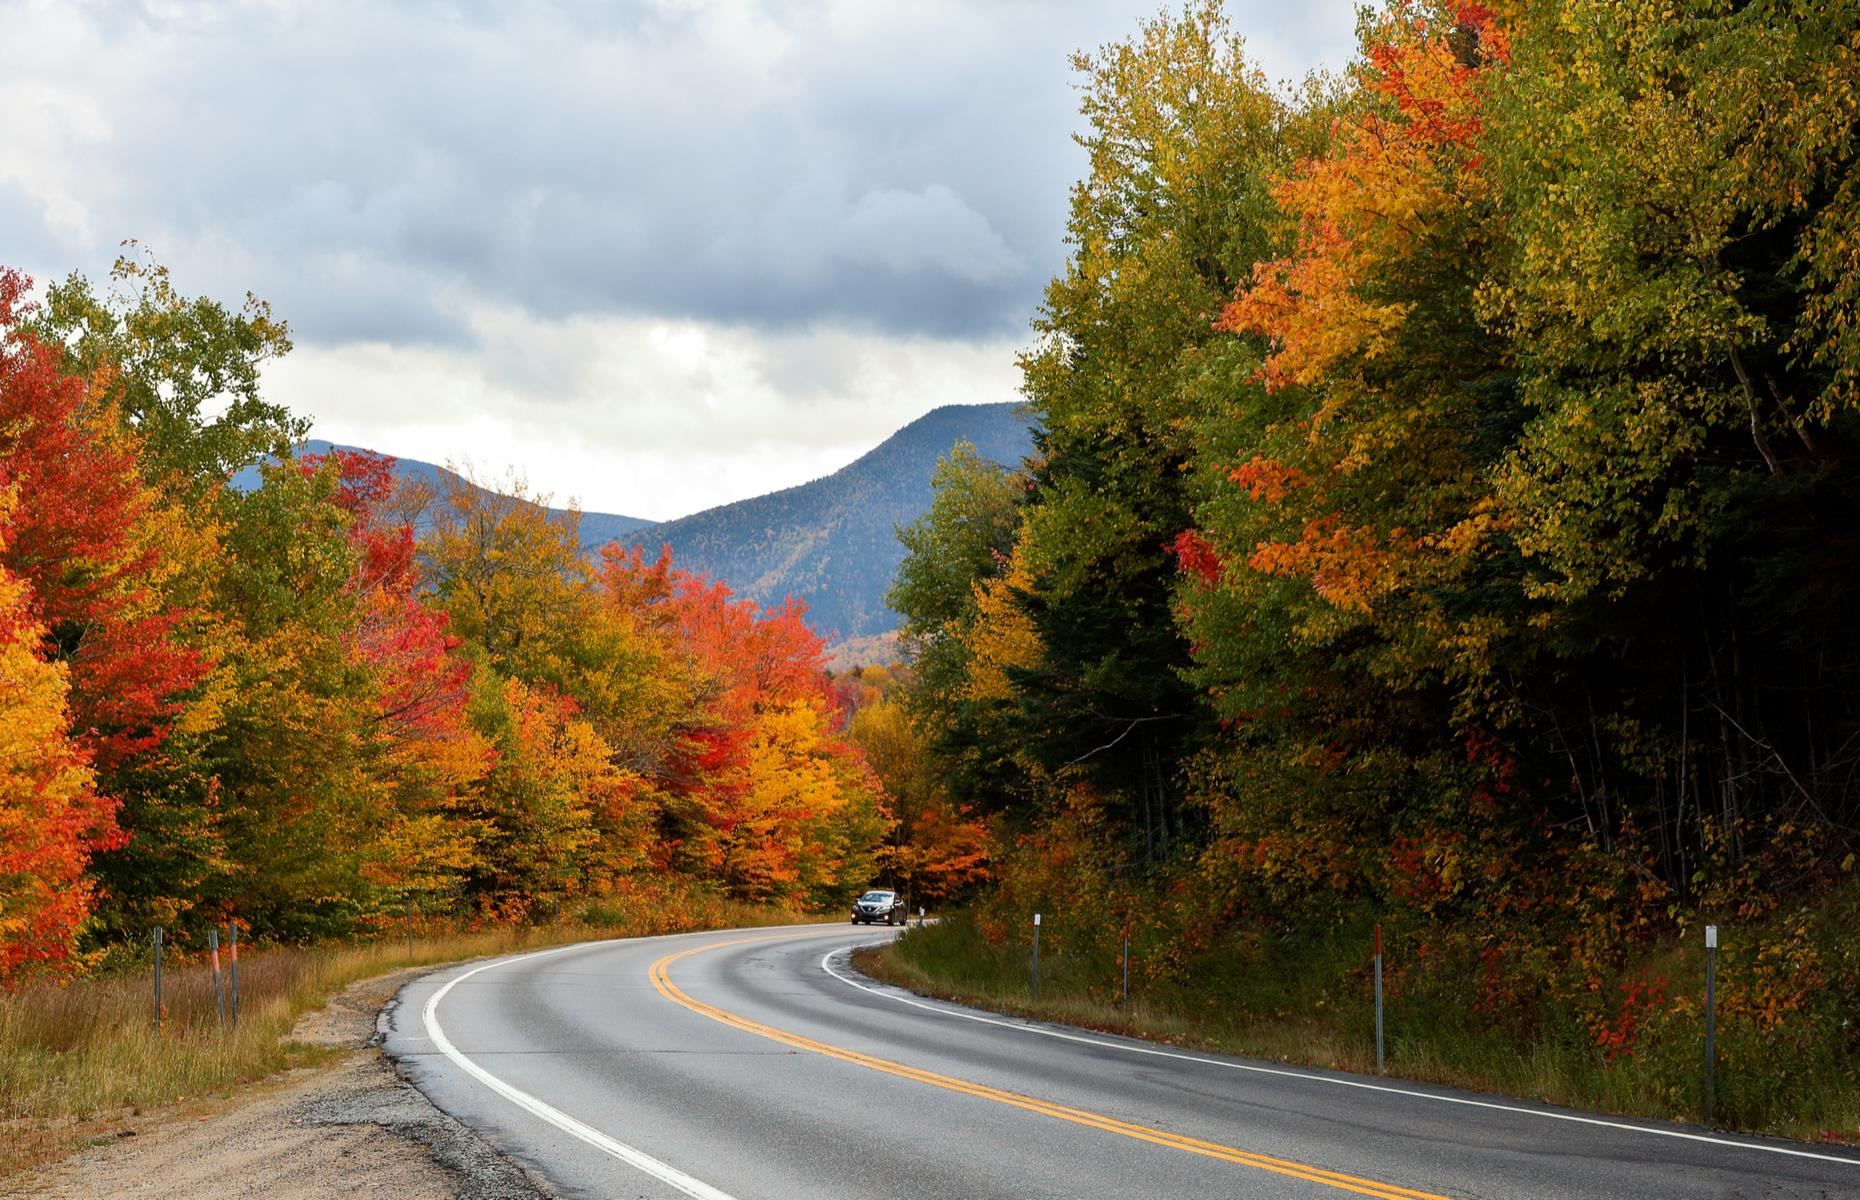 Slide 58 of 101: Best traveled in the fall, this road-trip route takes the long way from the Strafford County city of Dover to the White Mountain town of Lincoln. The first stretch of the journey pushes north on NH-16 to reach Conway, a small town close to Echo Lake State Park (this park now requires an advanced day-use reservation). From Conway, the driver is rewarded with stunning views as they travel on the famed Kancamagus Highway (pictured) through dense White Mountain forest to reach Lincoln.